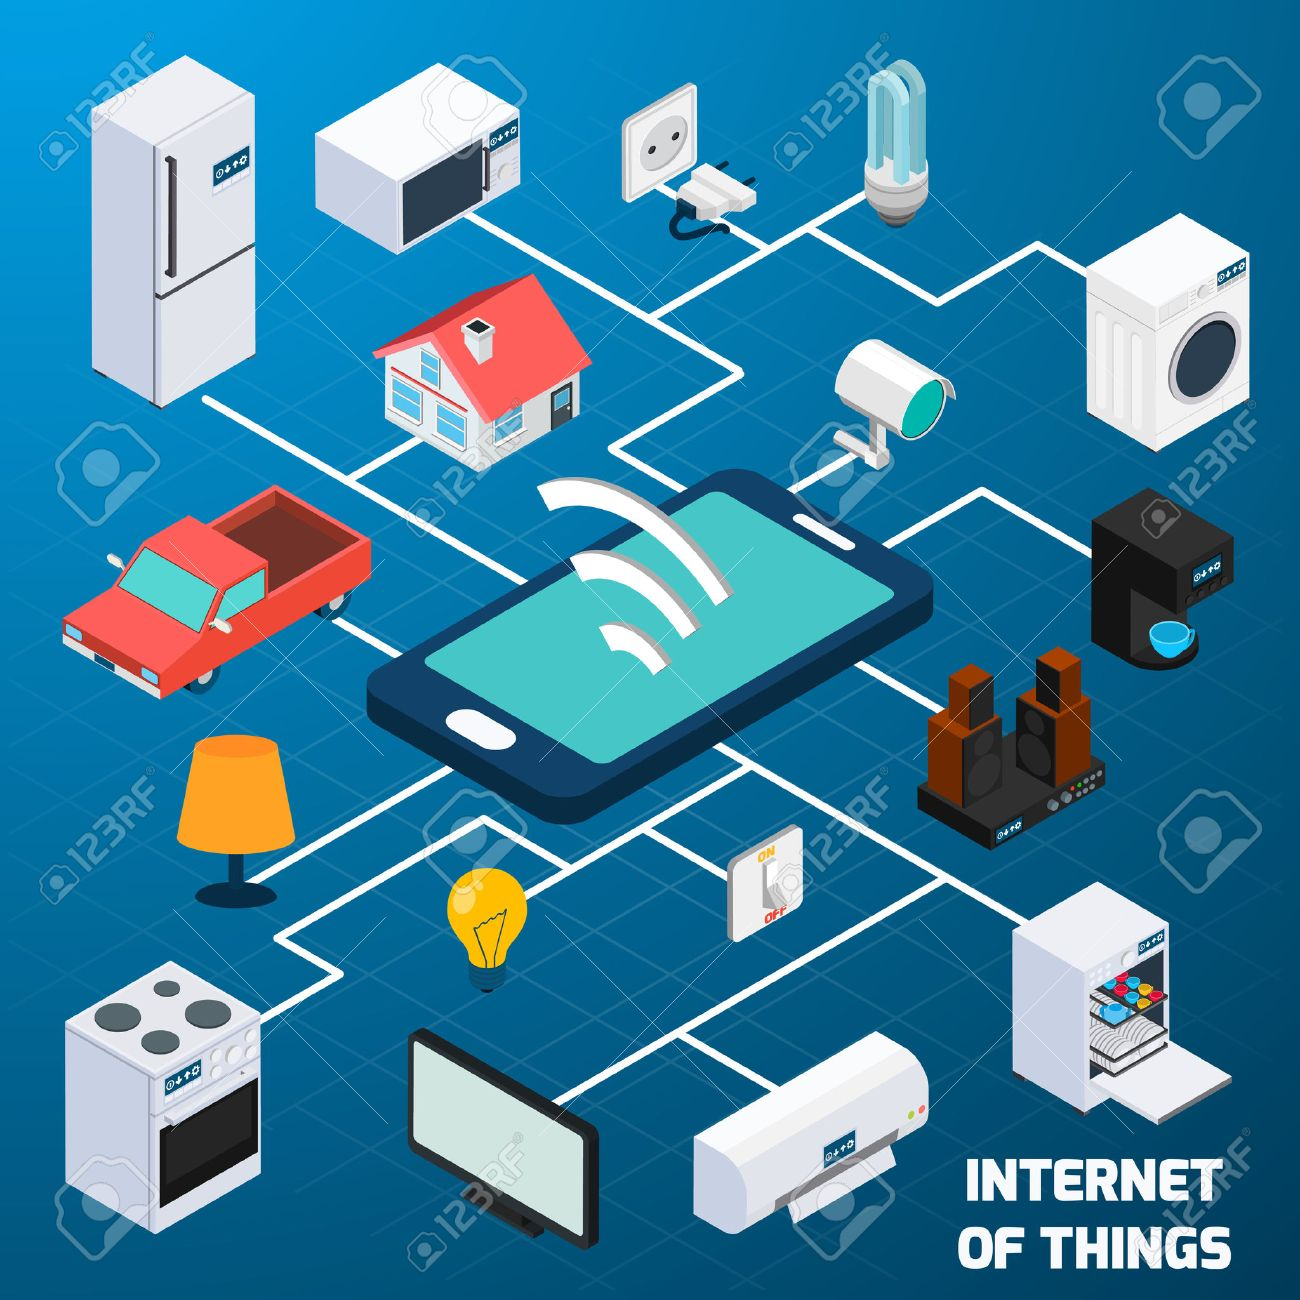 Internet of things iot home household appliances and car control security concept isometric banner abstract vector illustration - 50340857